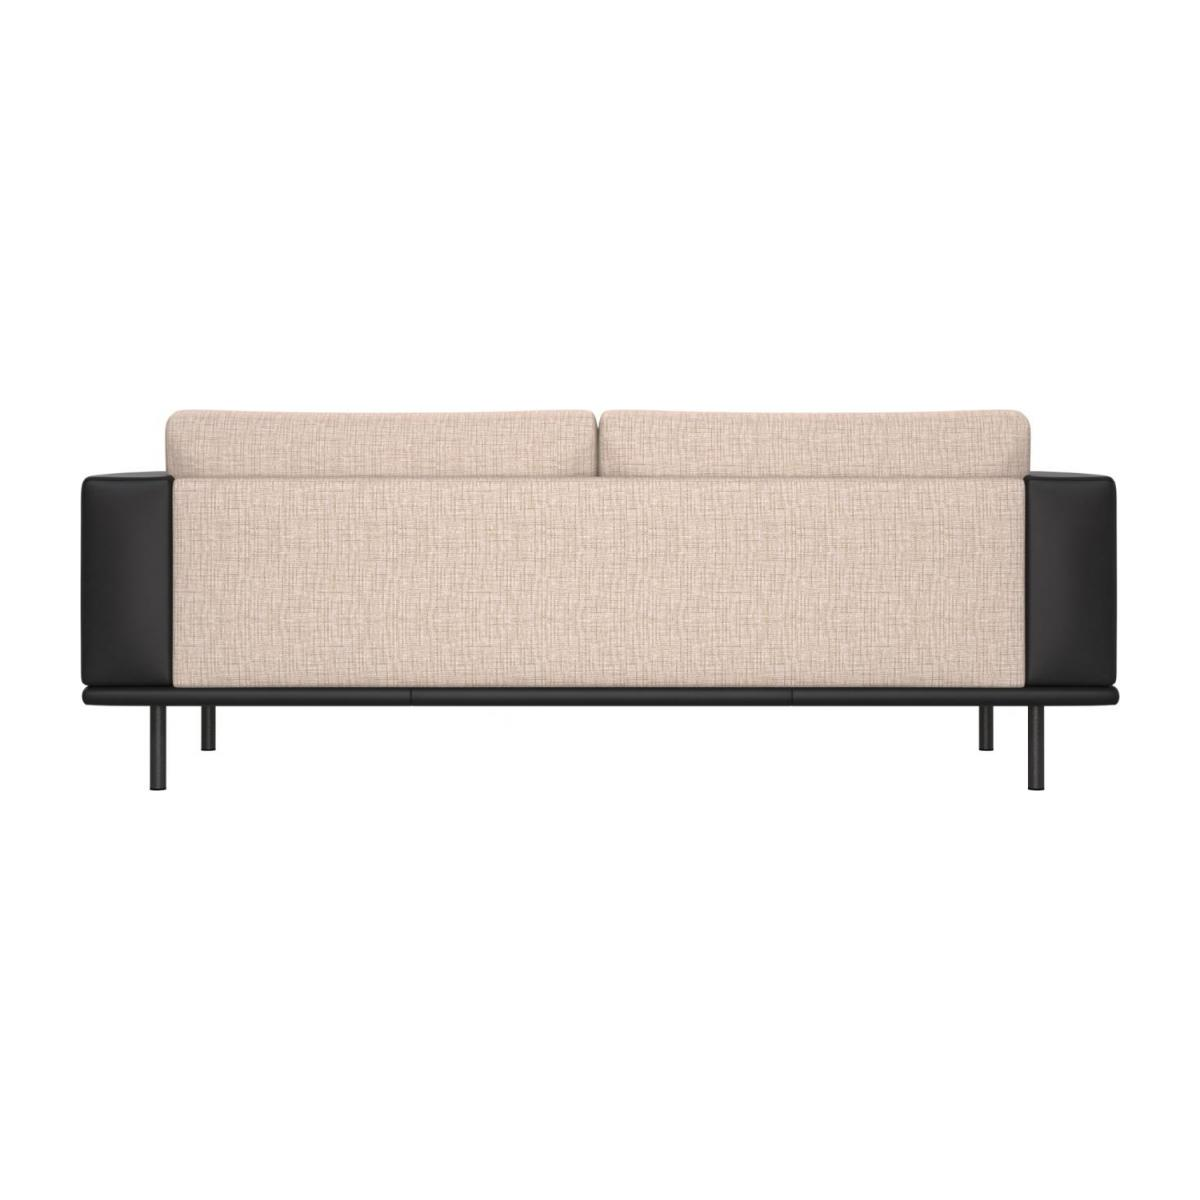 3 seater sofa in Ancio fabric, nature with base and armrests in black leather n°3